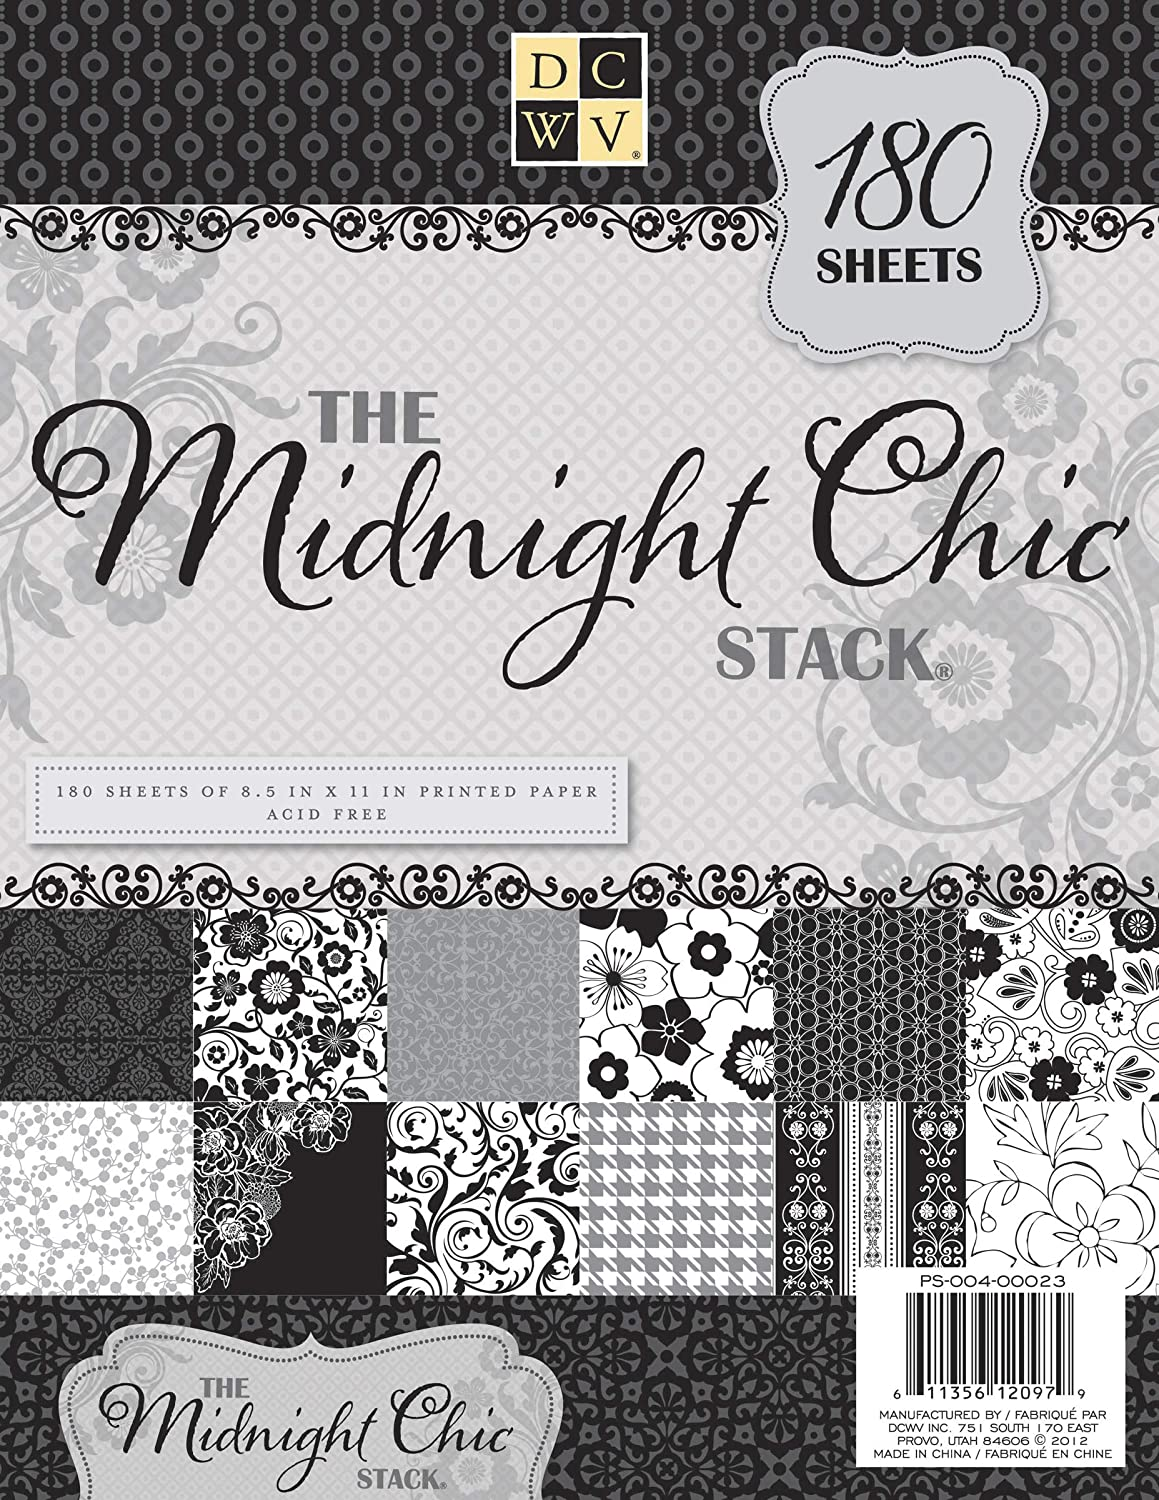 DCWV Card Stock Midnight Chic Stack Sheets, Multicolor